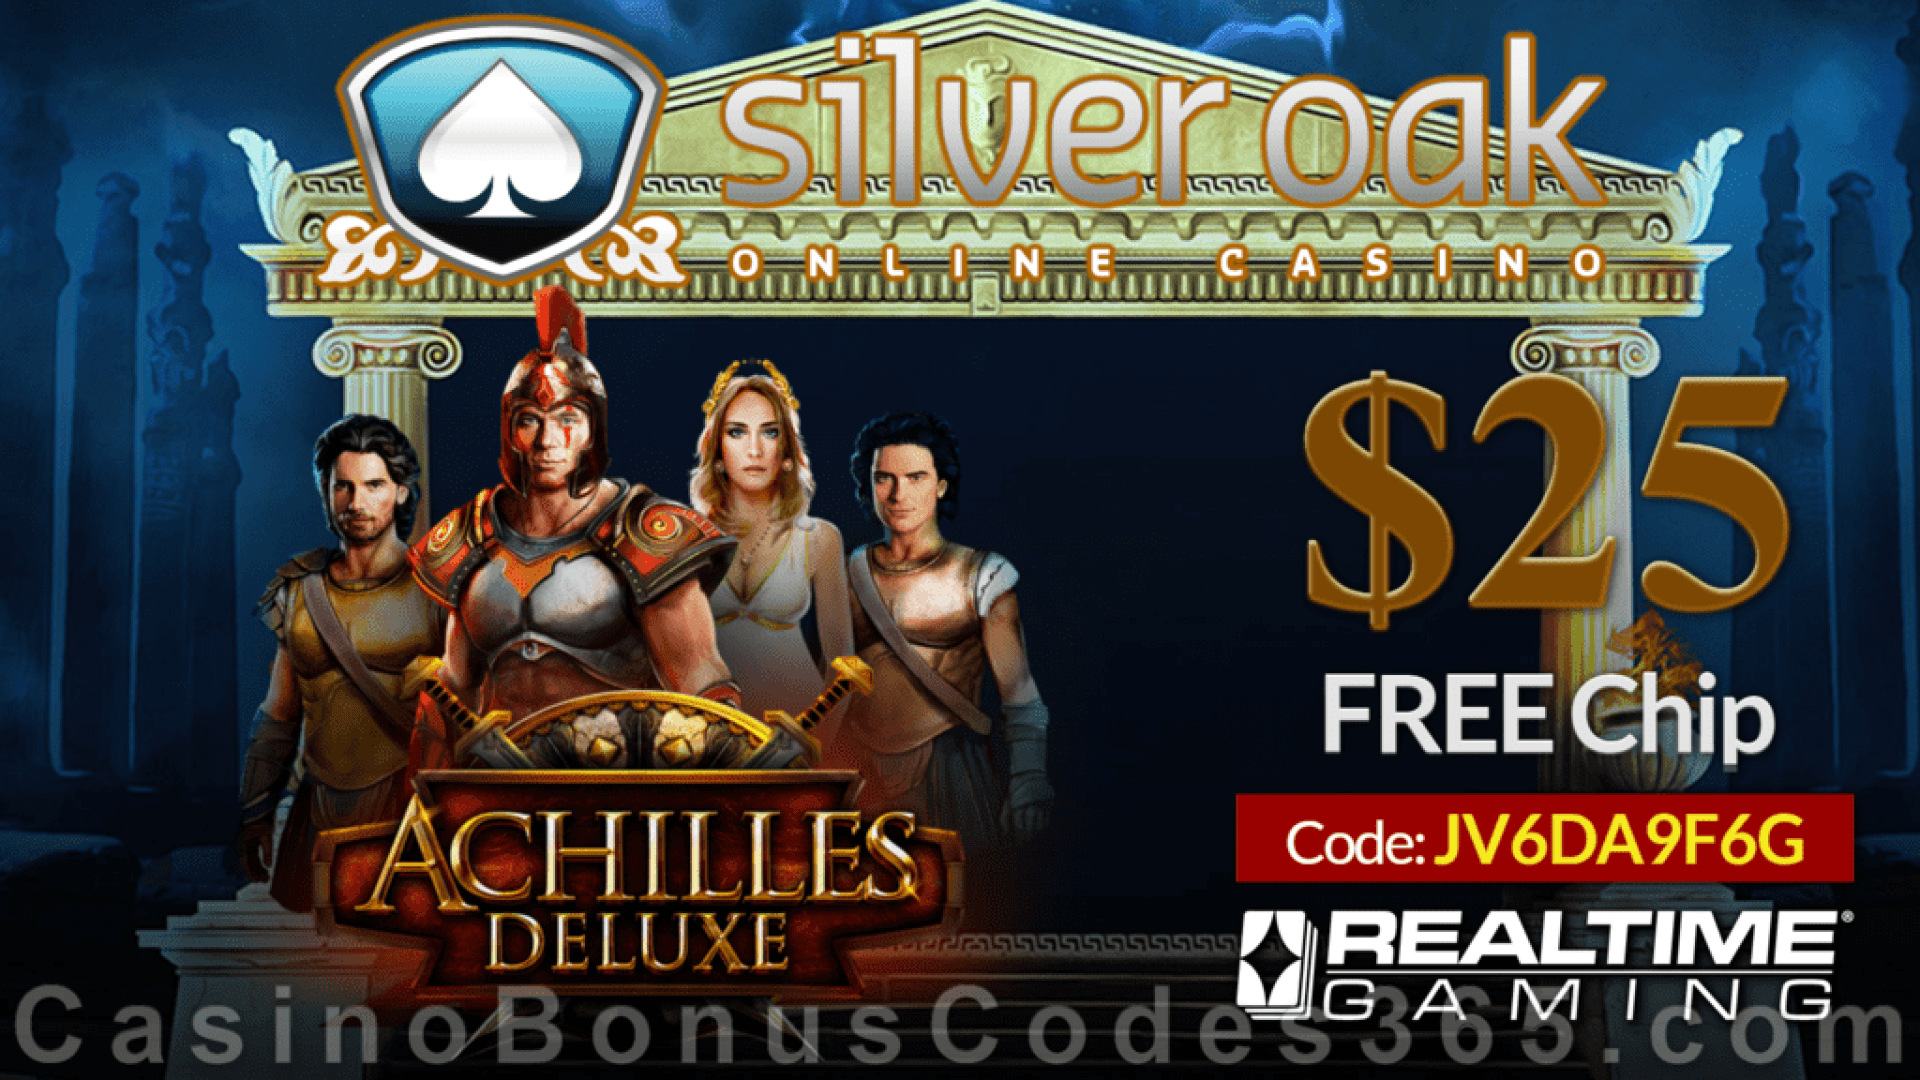 Silver Oak Online Casino  Achilles Deluxe New RTG Game $25 FREE Chip Pre Launch Special Offer